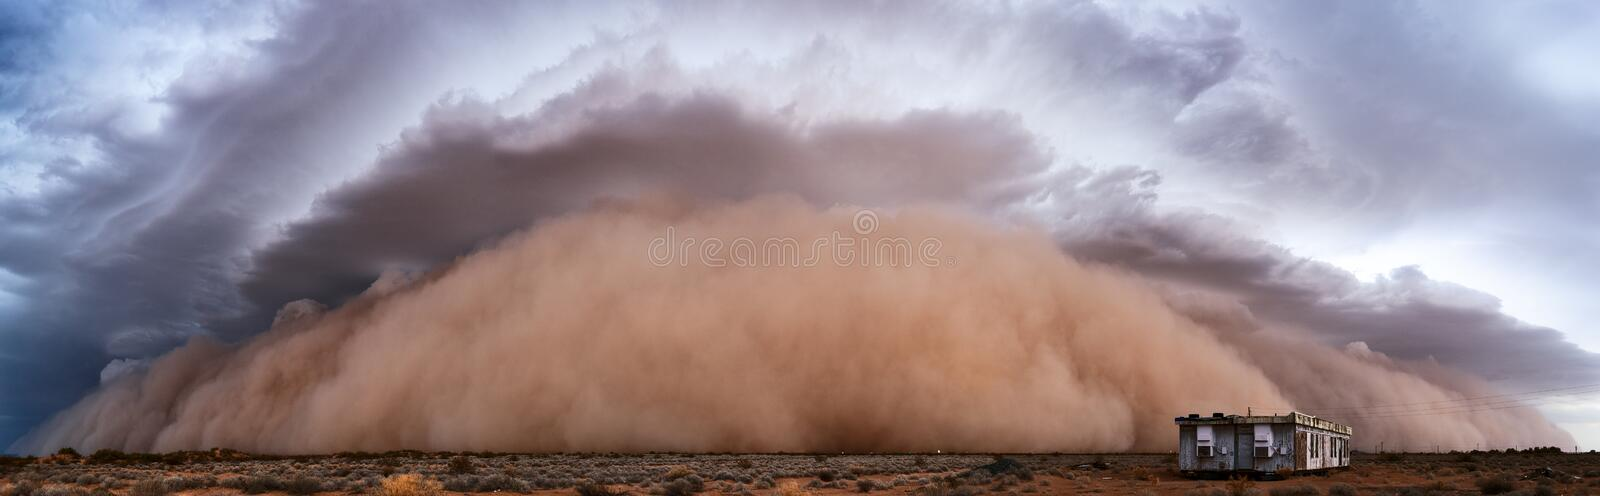 Panoramic view of a Haboob dust storm royalty free stock images